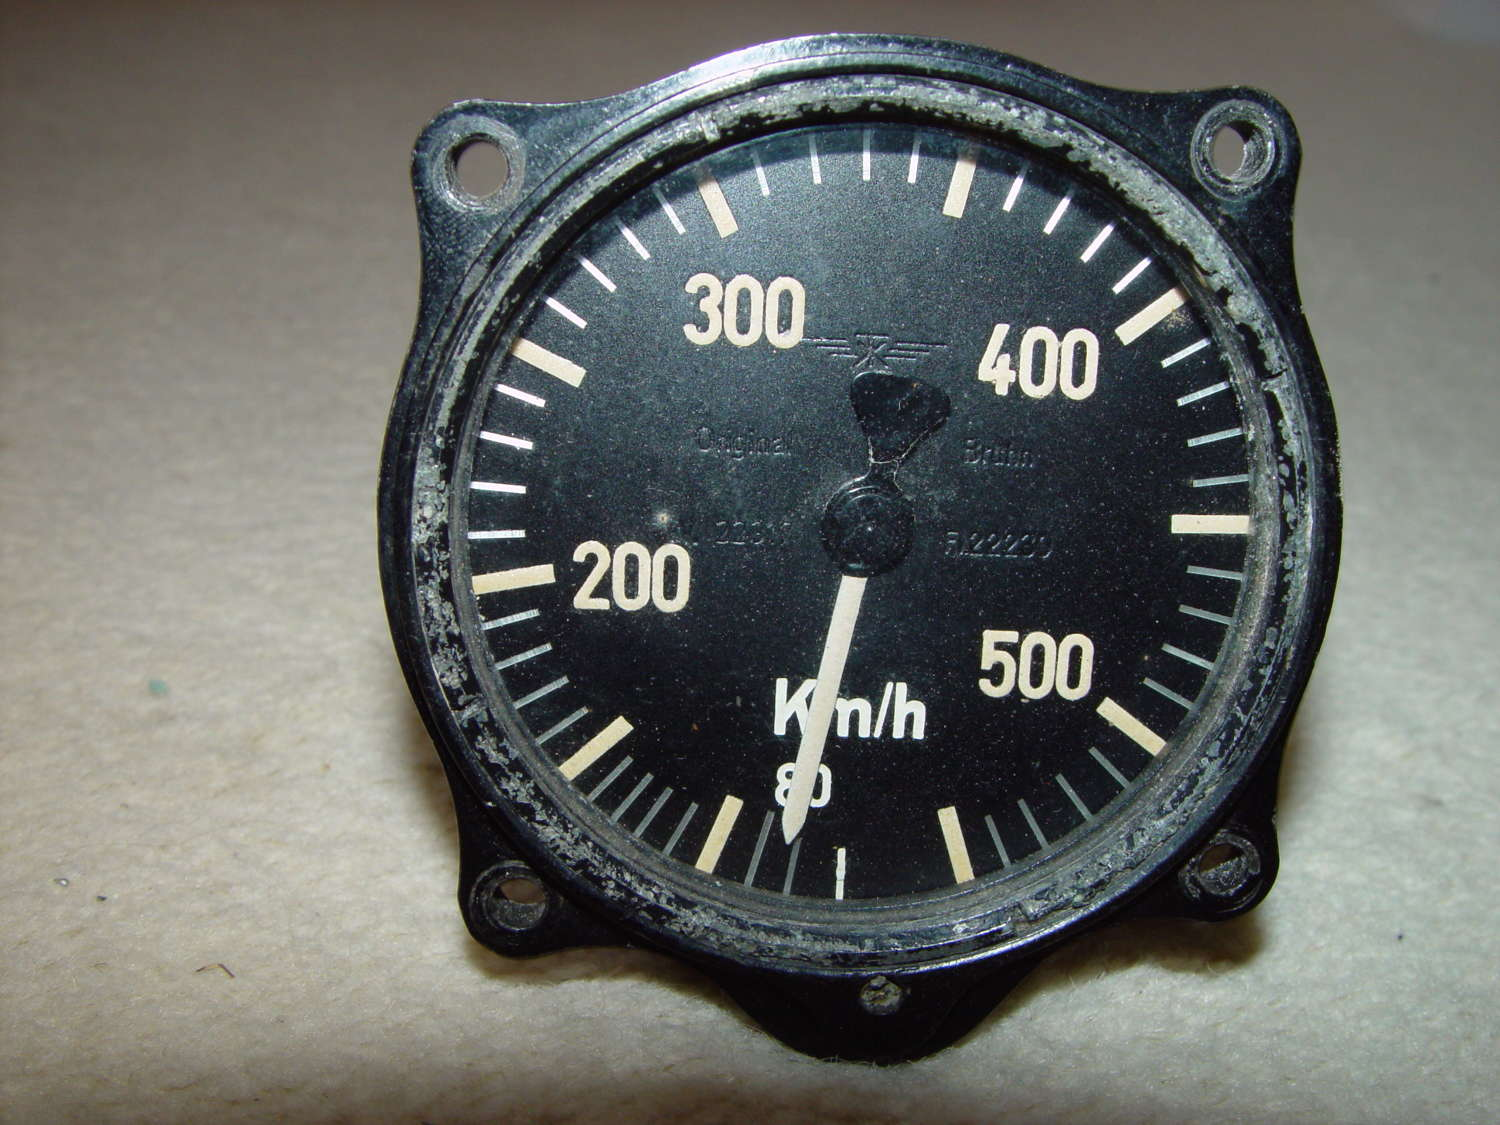 German Luftwaffe airspeed indicator 550 kph